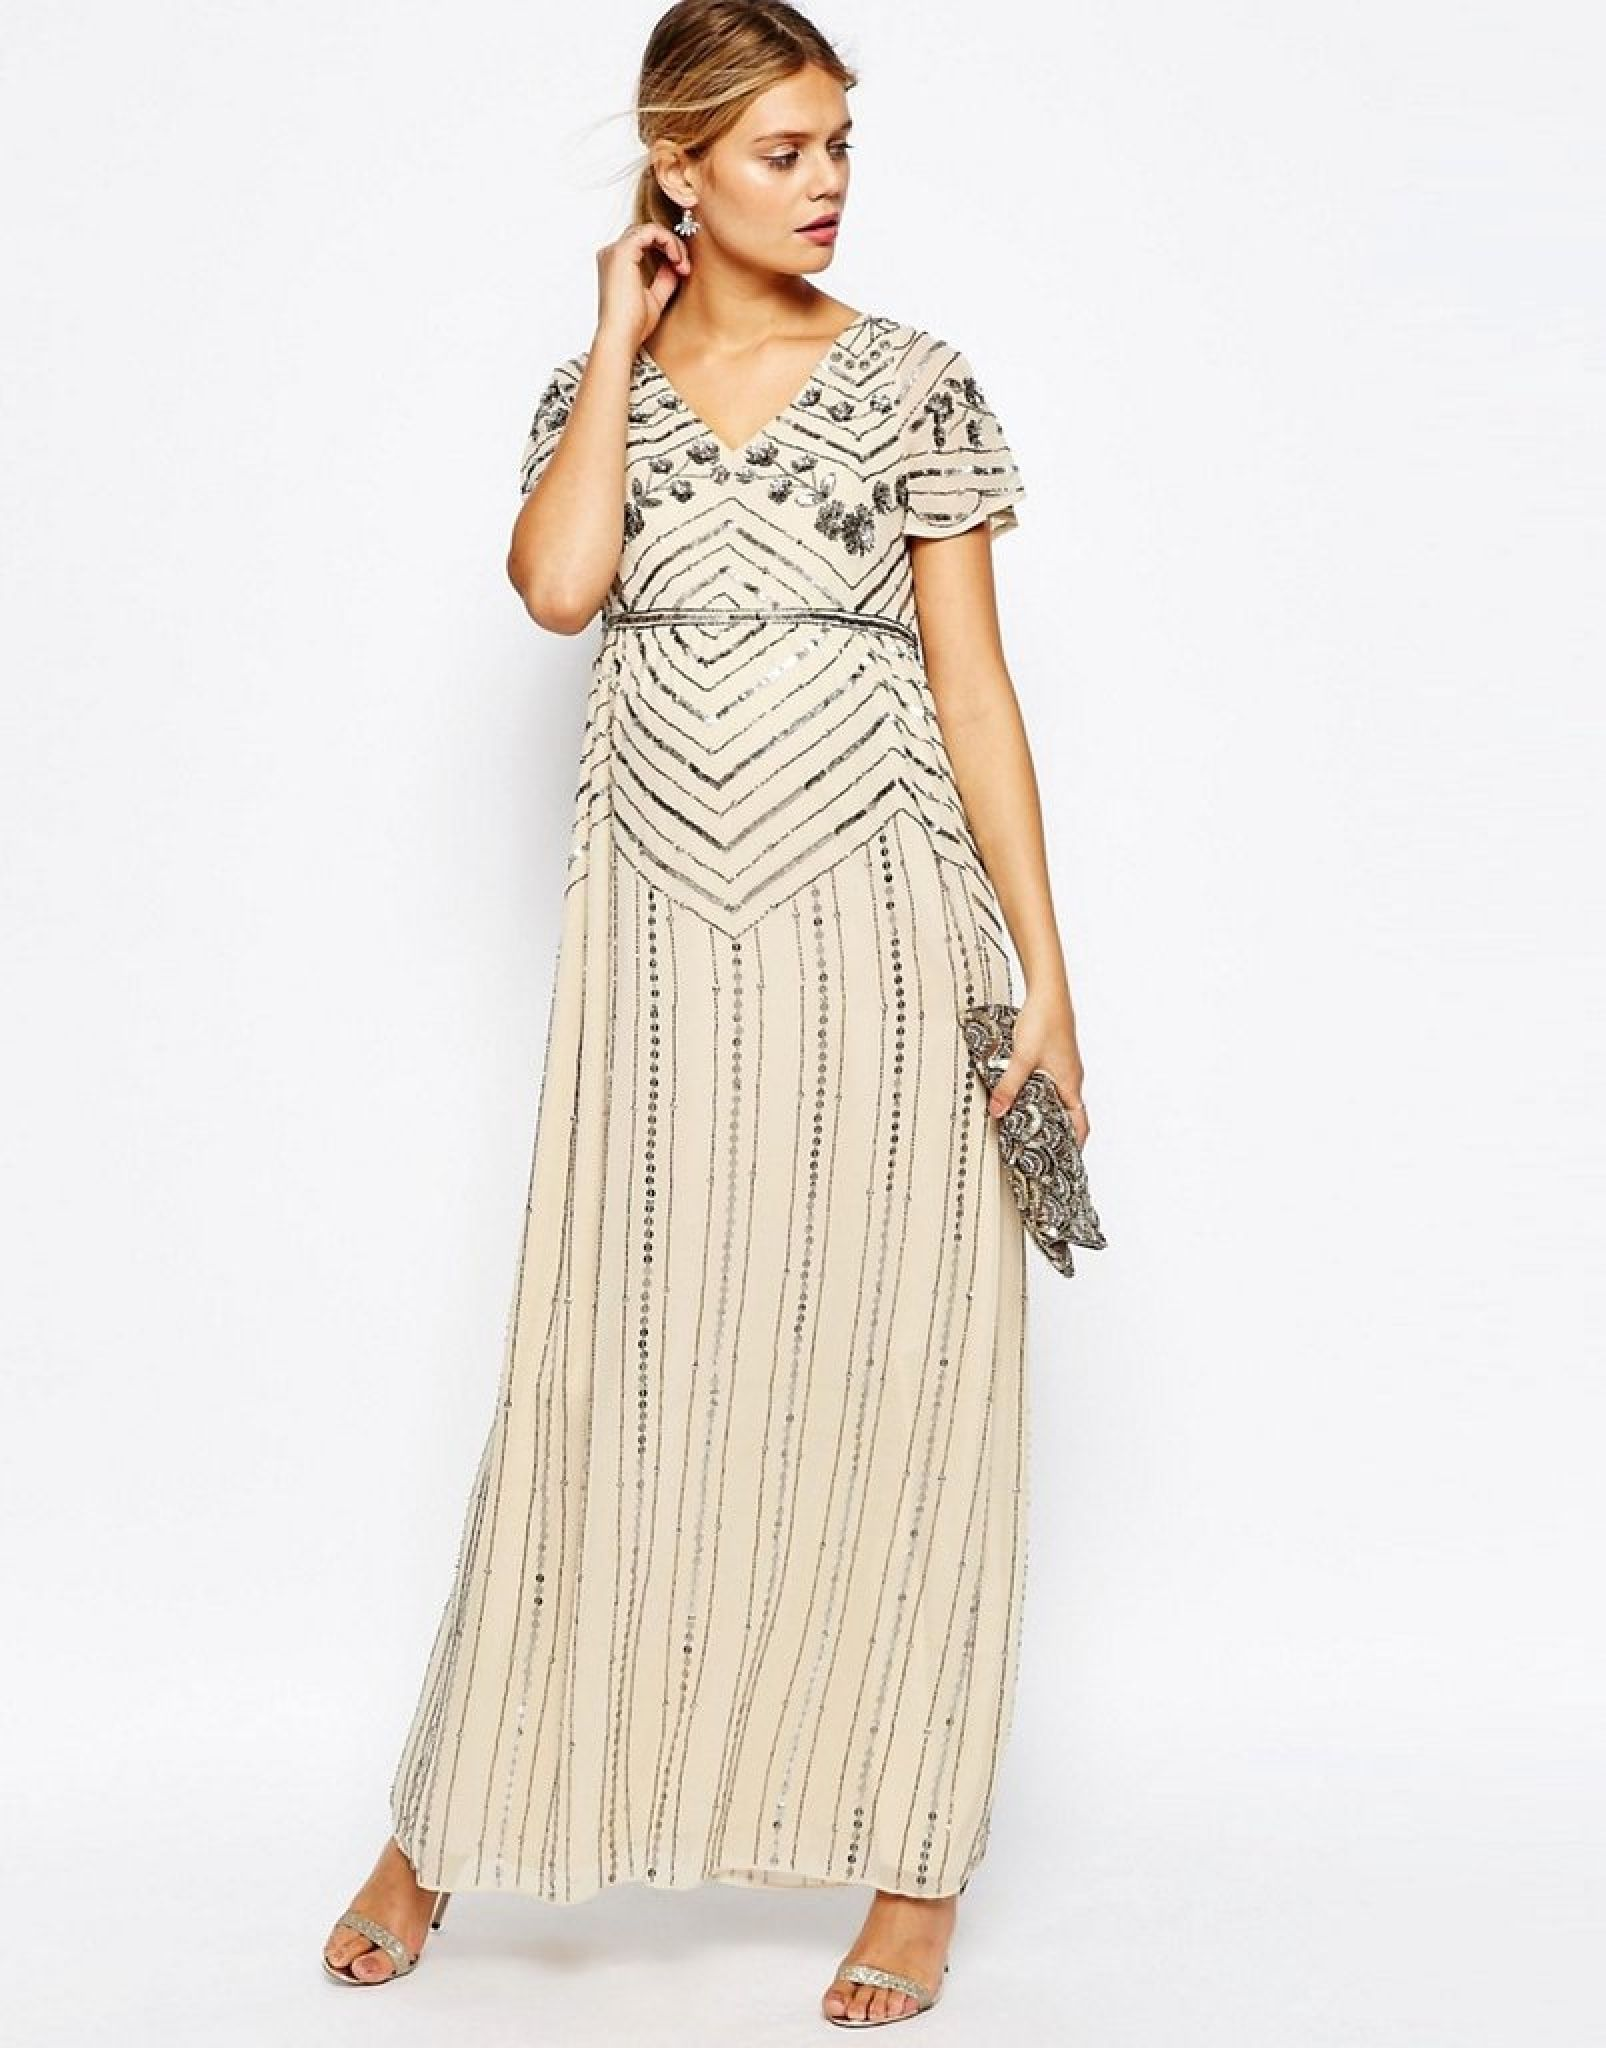 Maternity Guest Wedding Dresses Plus Size For Check More At Http